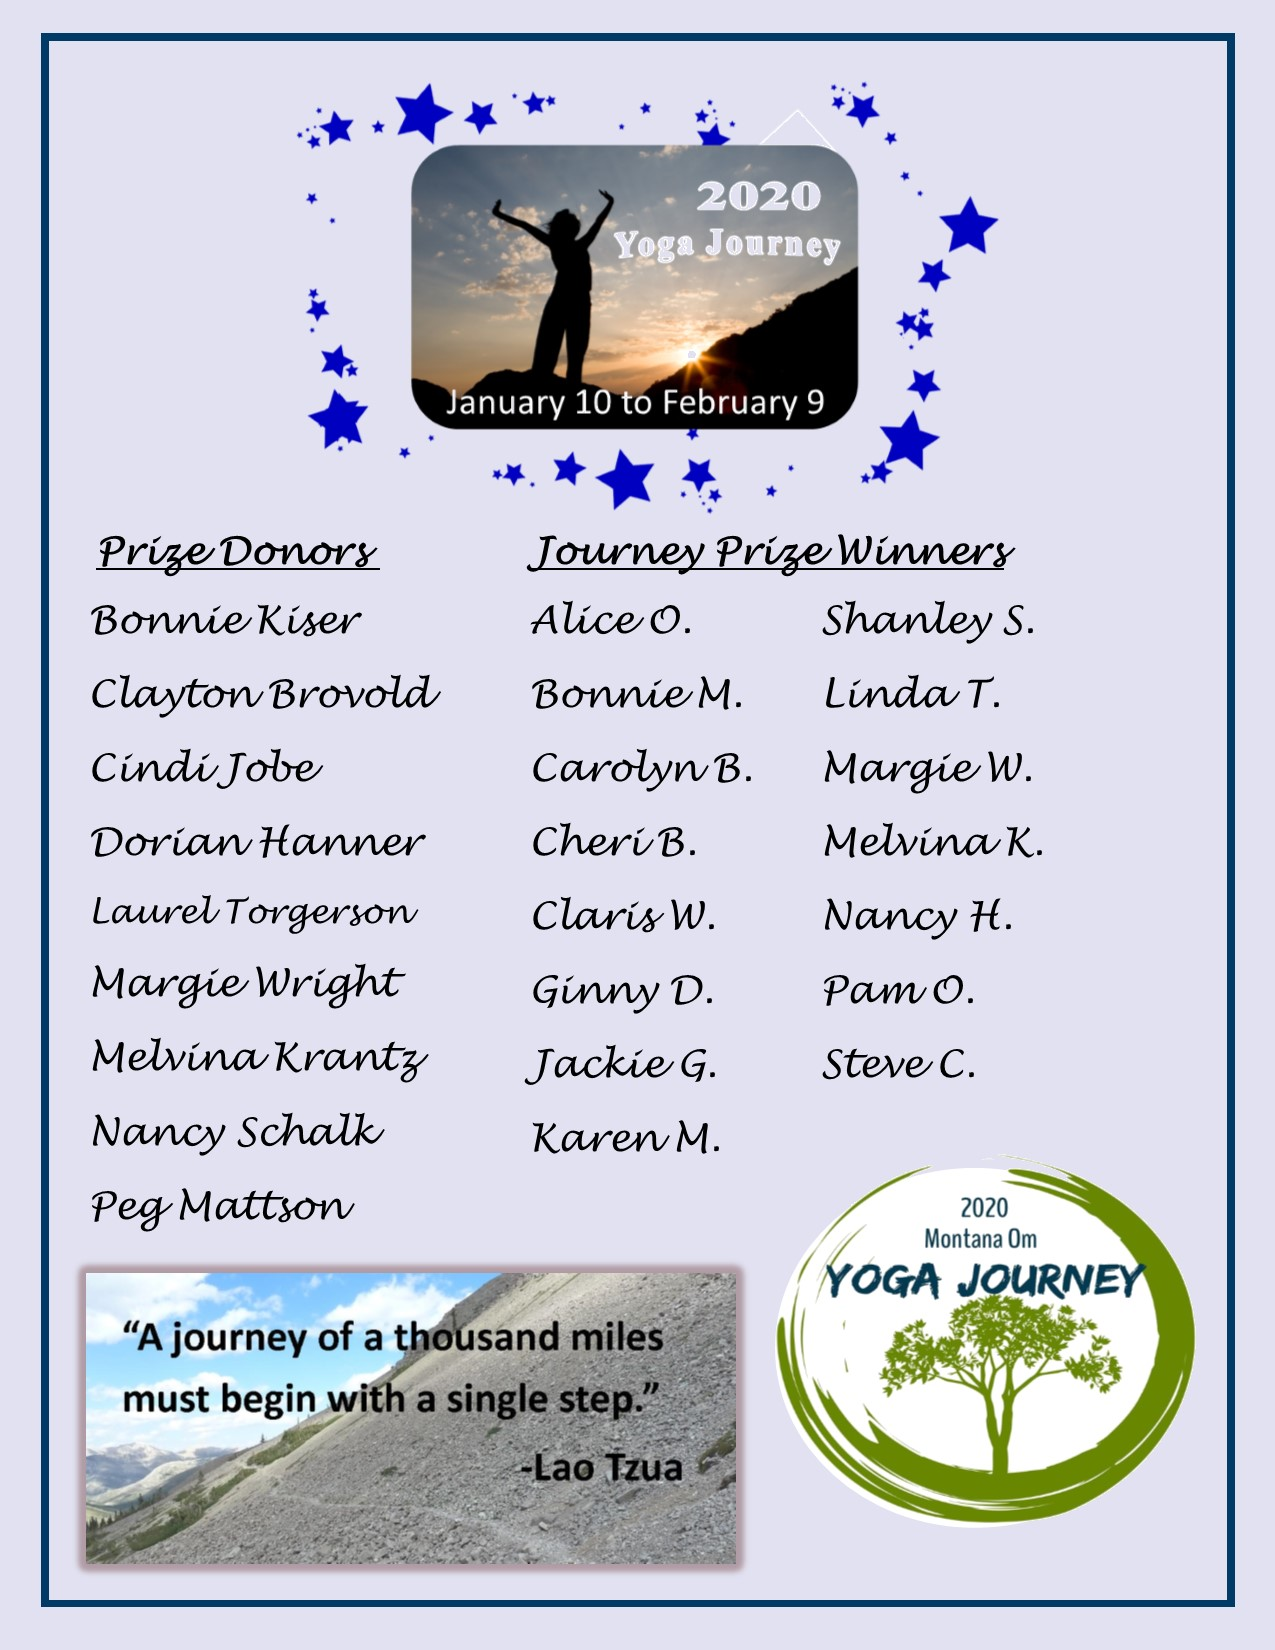 Yoga Journey 2020 Donors/Winners